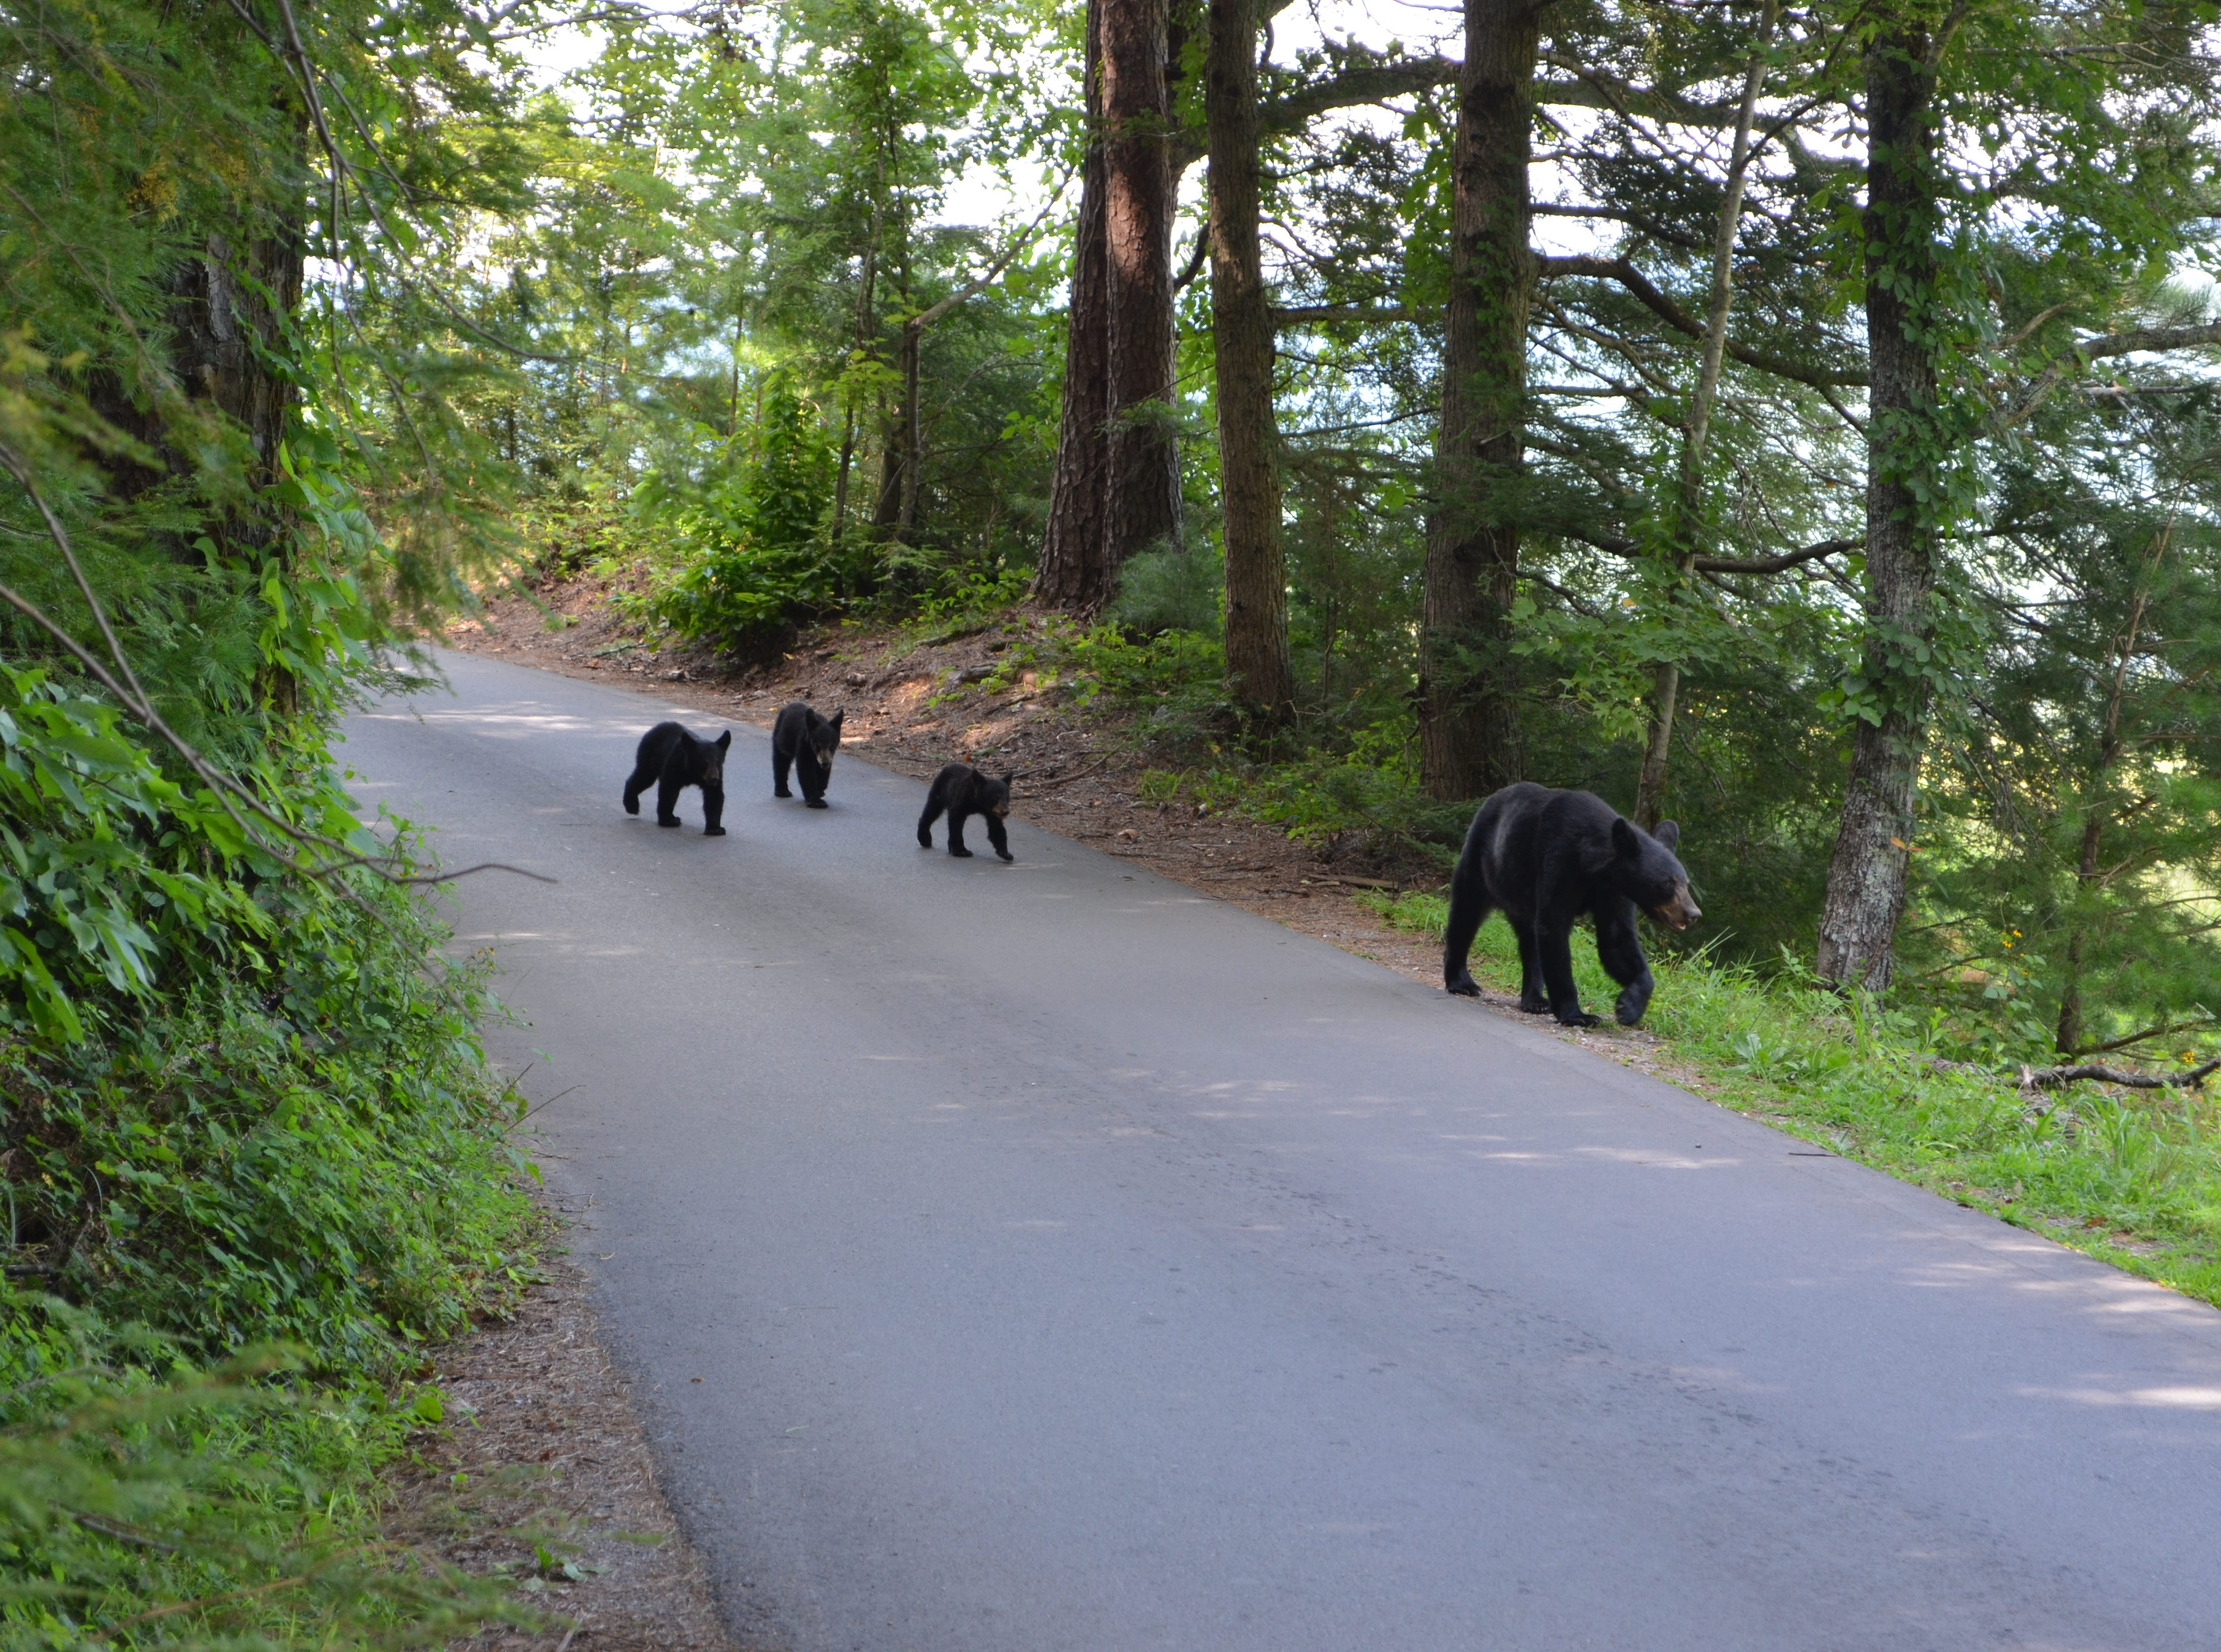 """Jack Evans photographed this black bear family a year ago on the Cades Cove Loop Road in the Great Smoky Mountains National Park. """"I saw a bear and a cub, then there was another, and another just ambling down (the) road,"""" said Evans. """"(They) passed right by me. I was overcome by their presence."""" The Rockford resident used a Nikon 5100.  (Jack Evans/Special to the News Sentinel)"""